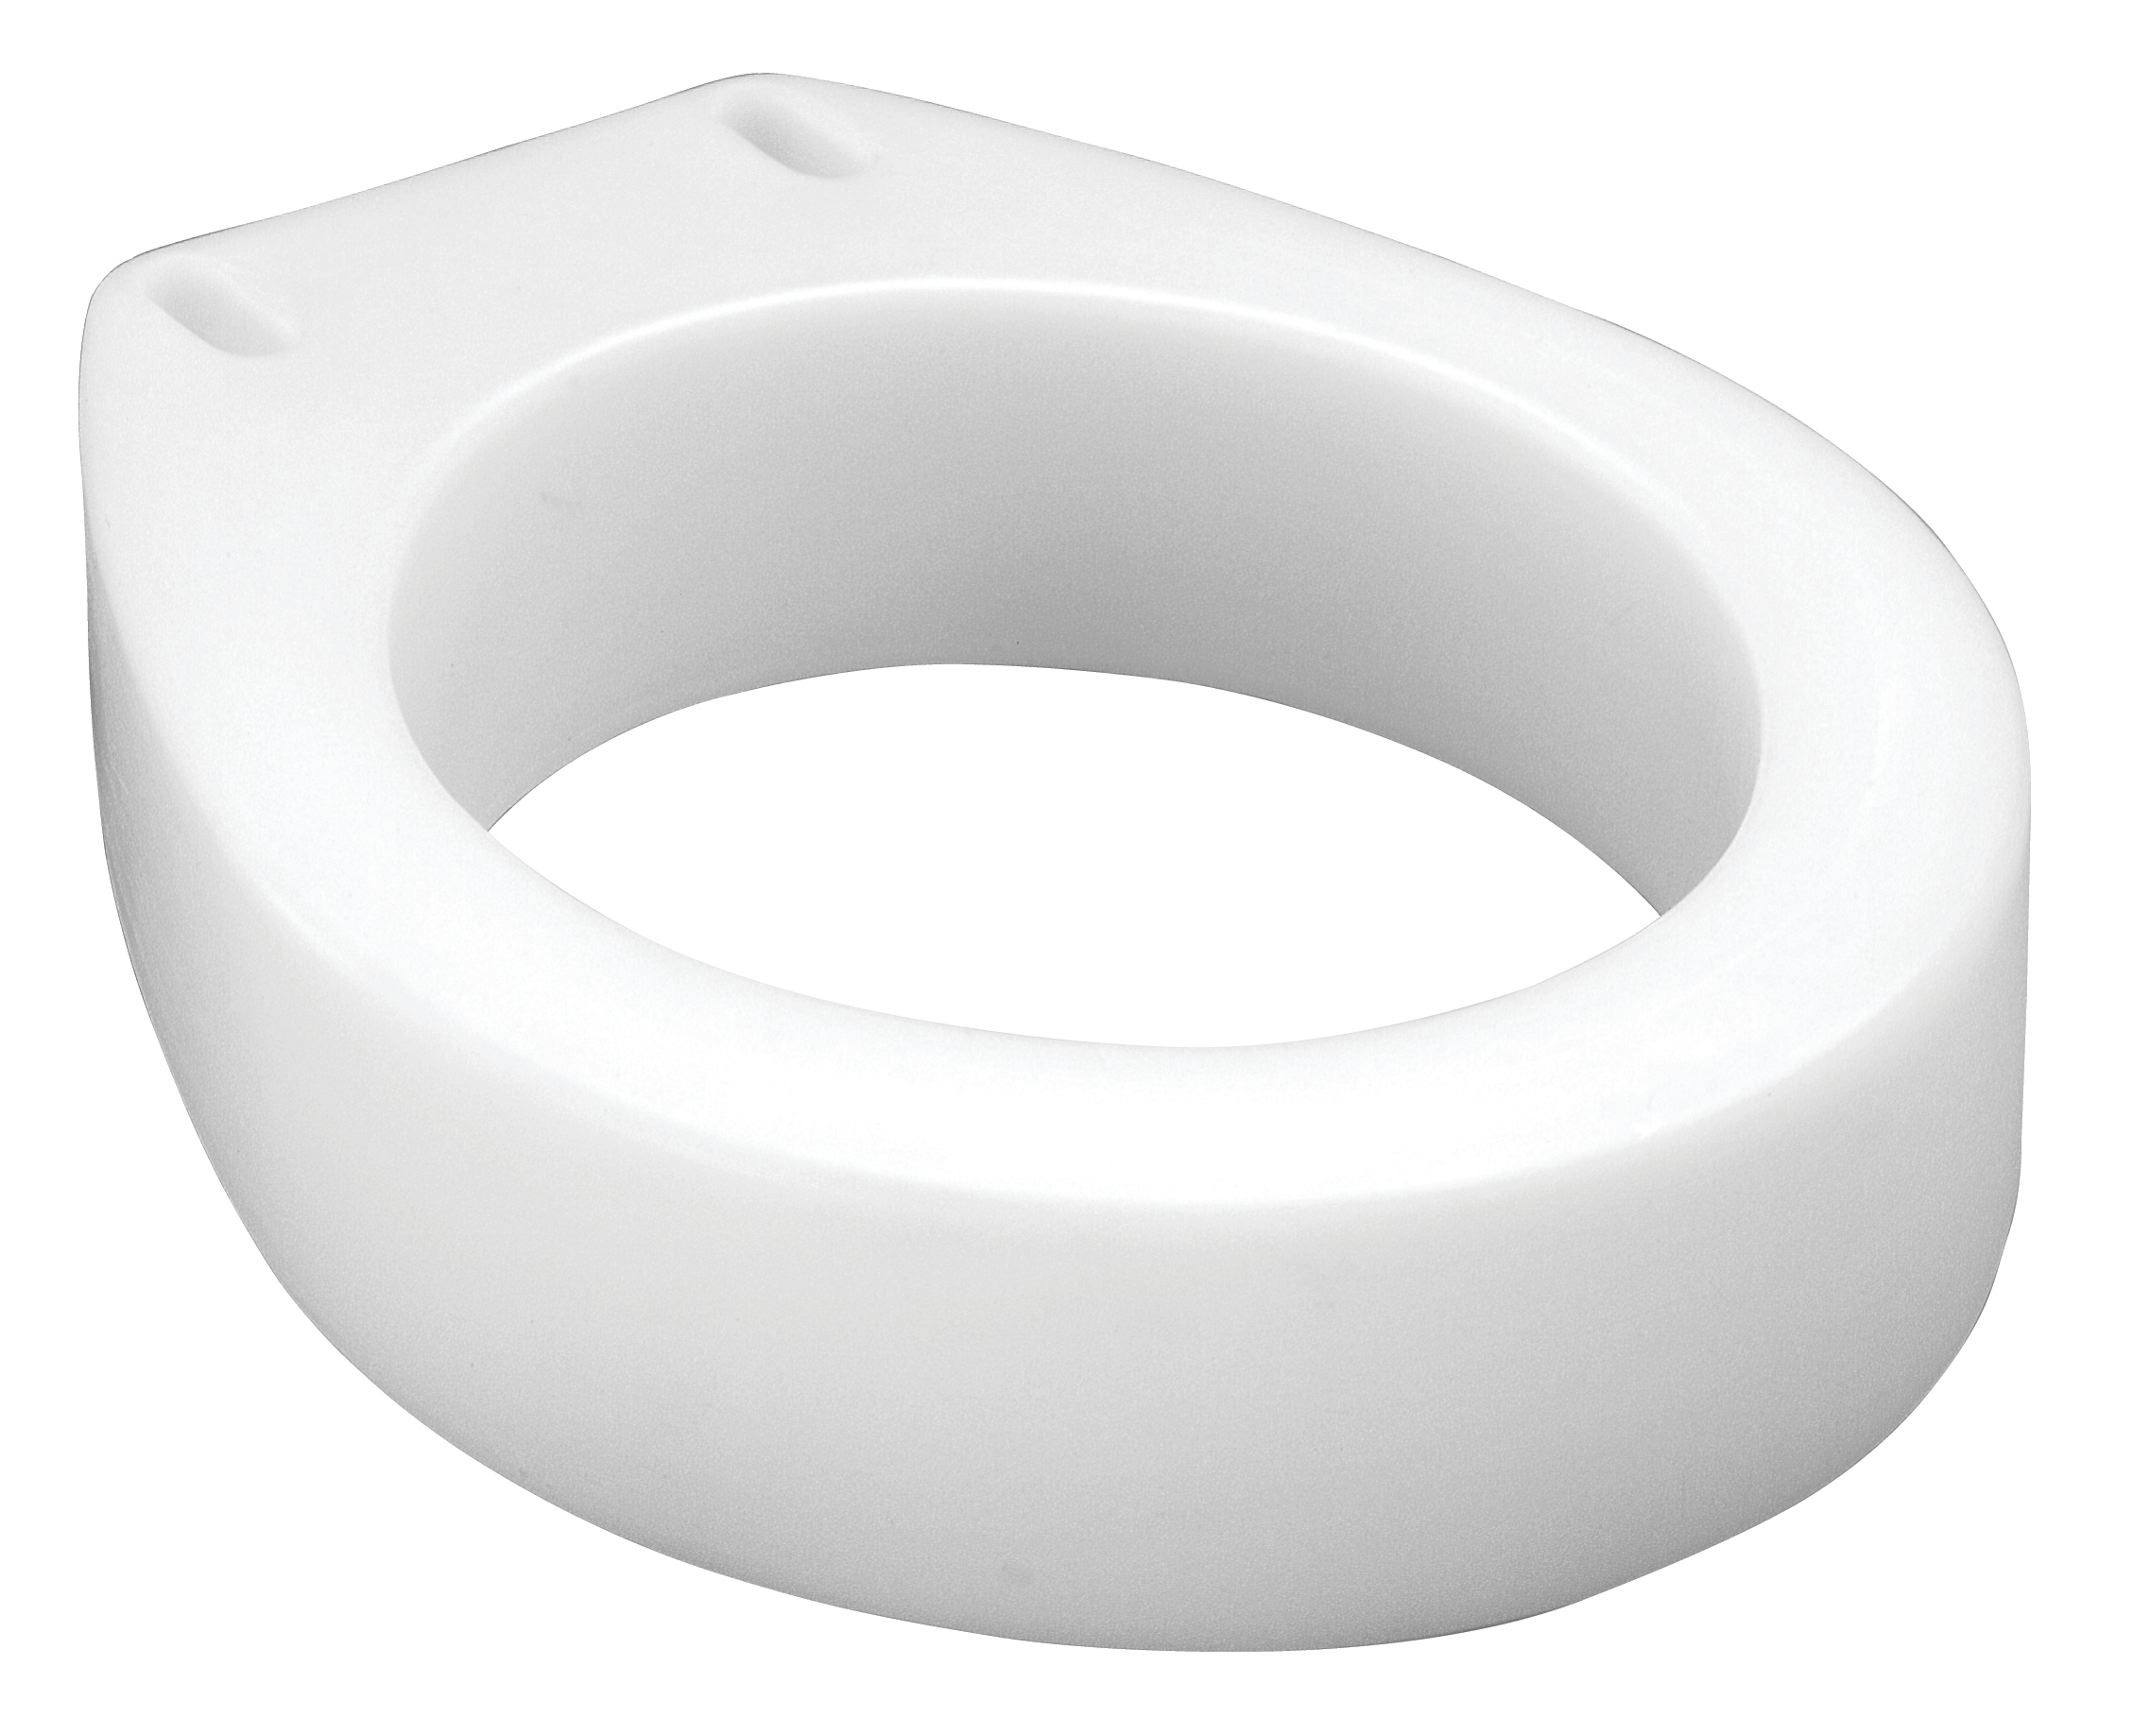 Carex Raised Toilet Seat Elevator Round Standard Shape